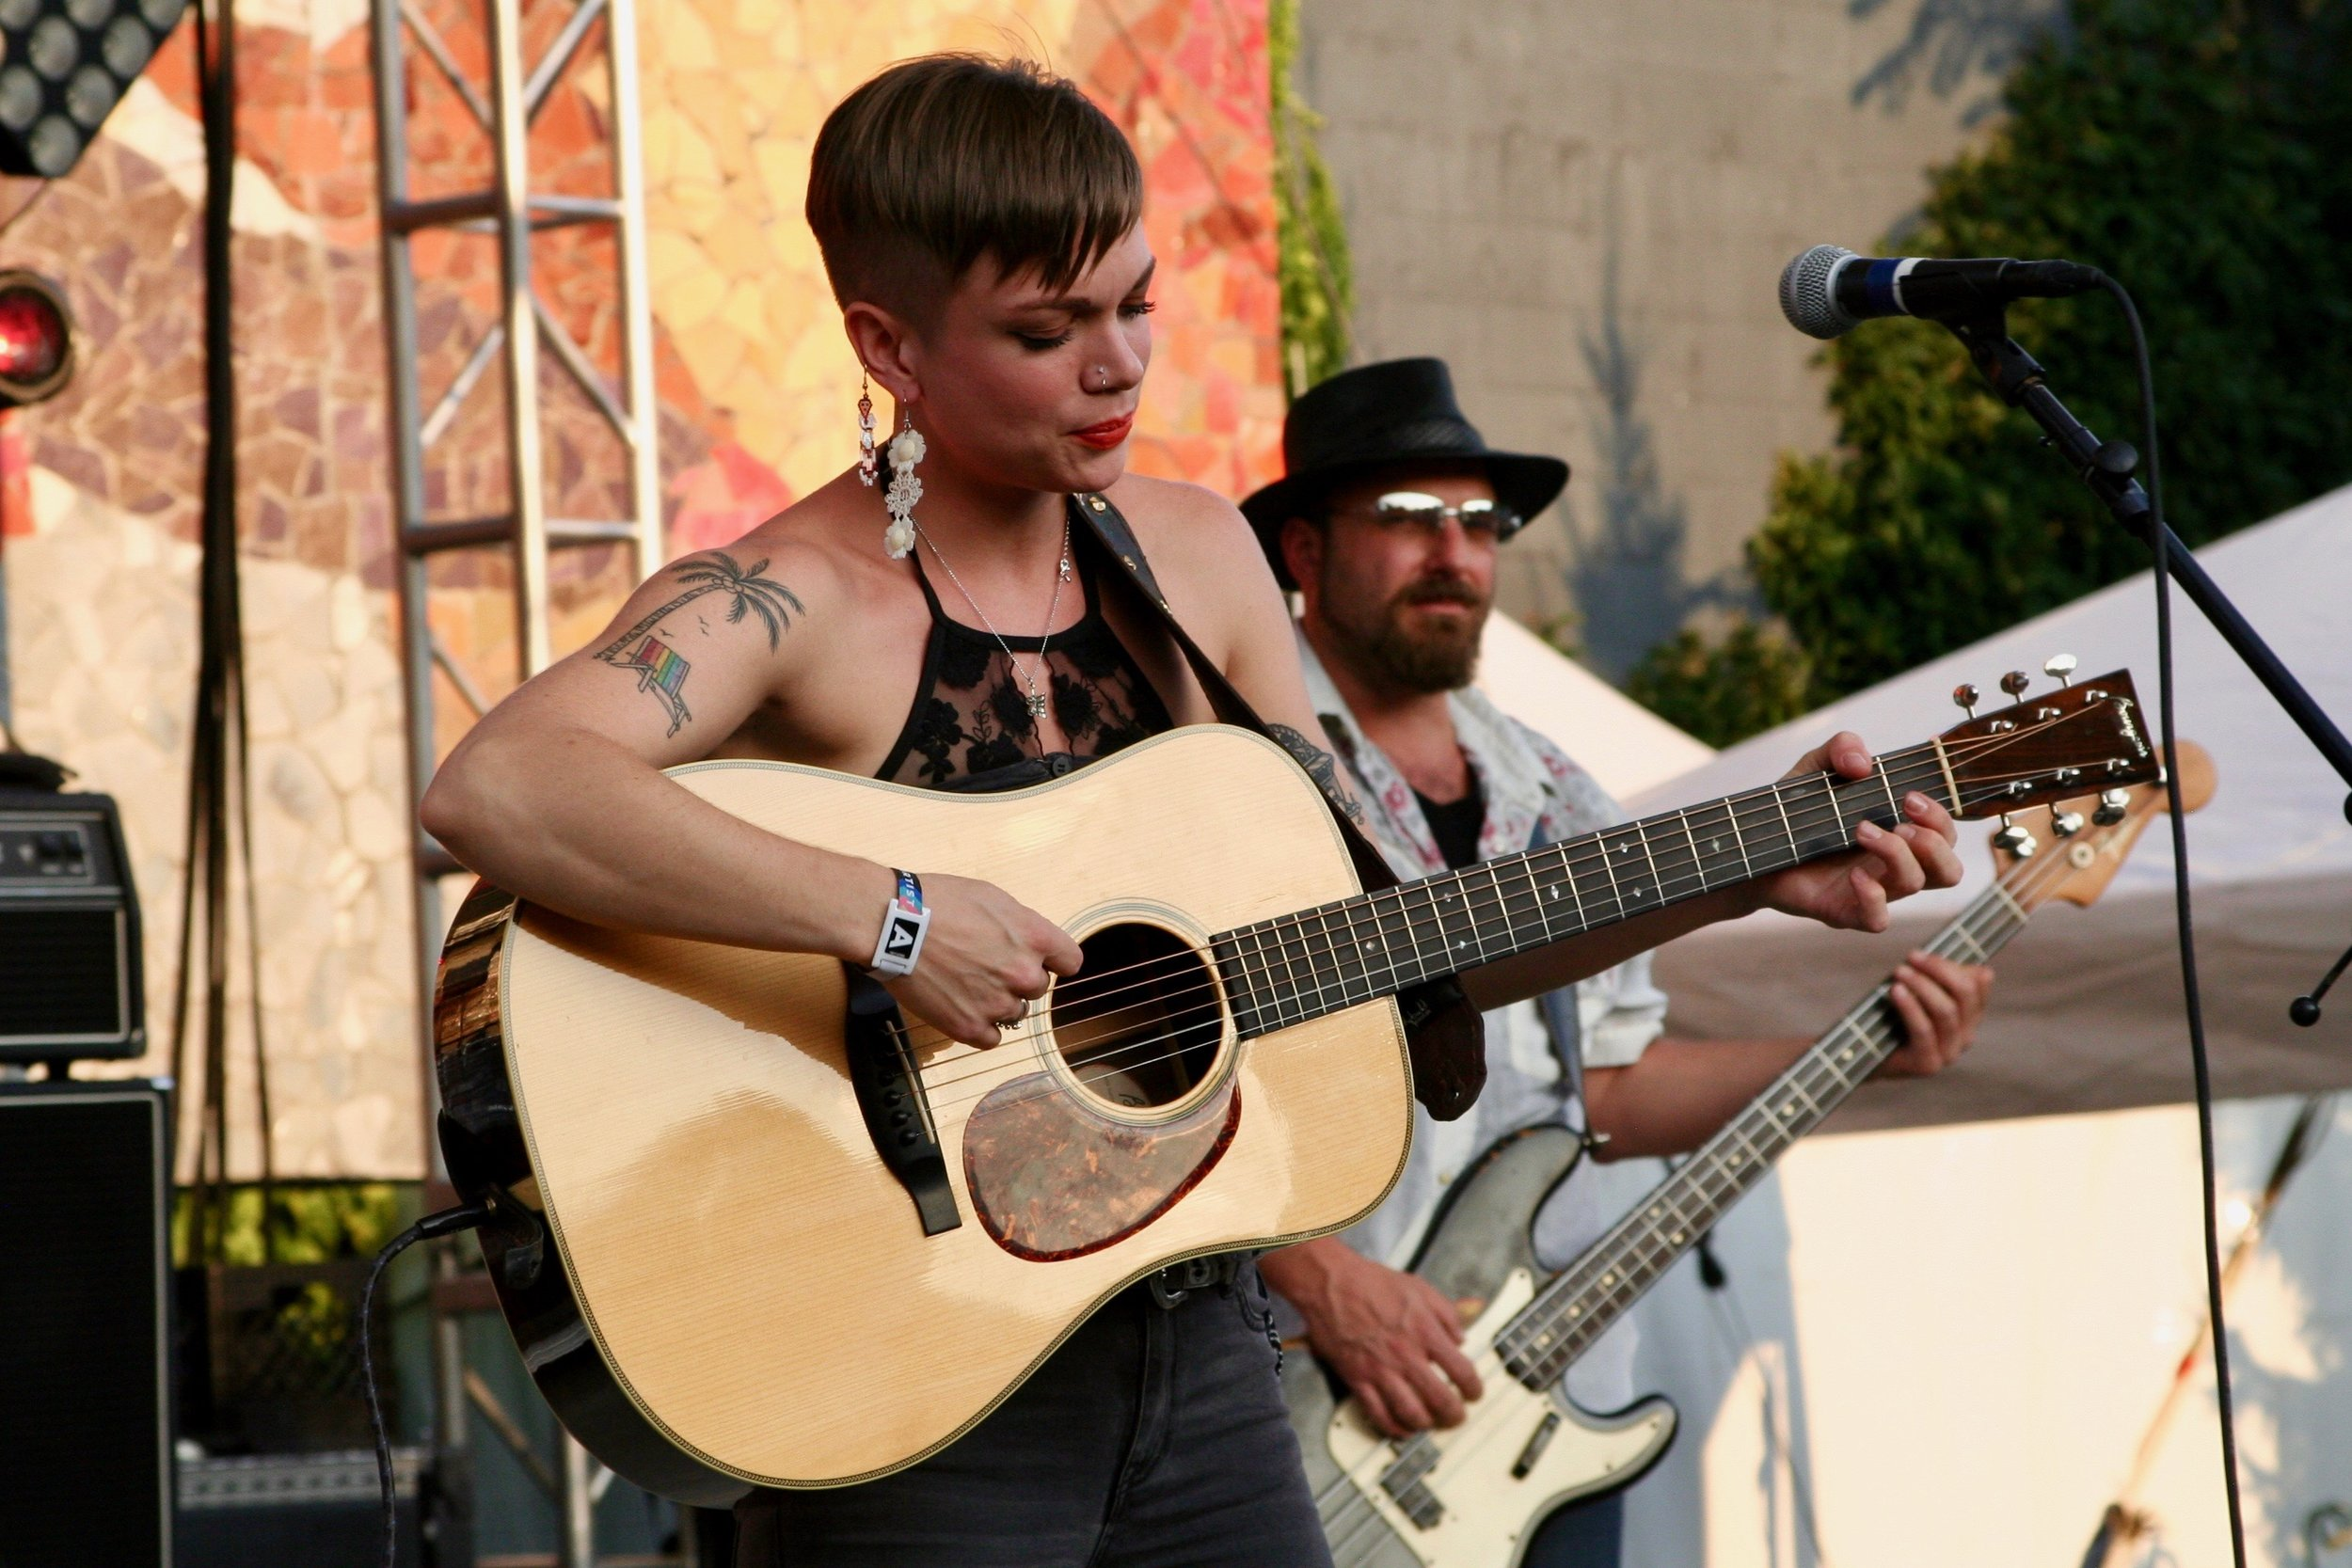 Lillie Mae brought some down-home country music to Bumbershoot during the early evening of September 3rd. This year, there was a wide array of options and it was great to listen to different genres.